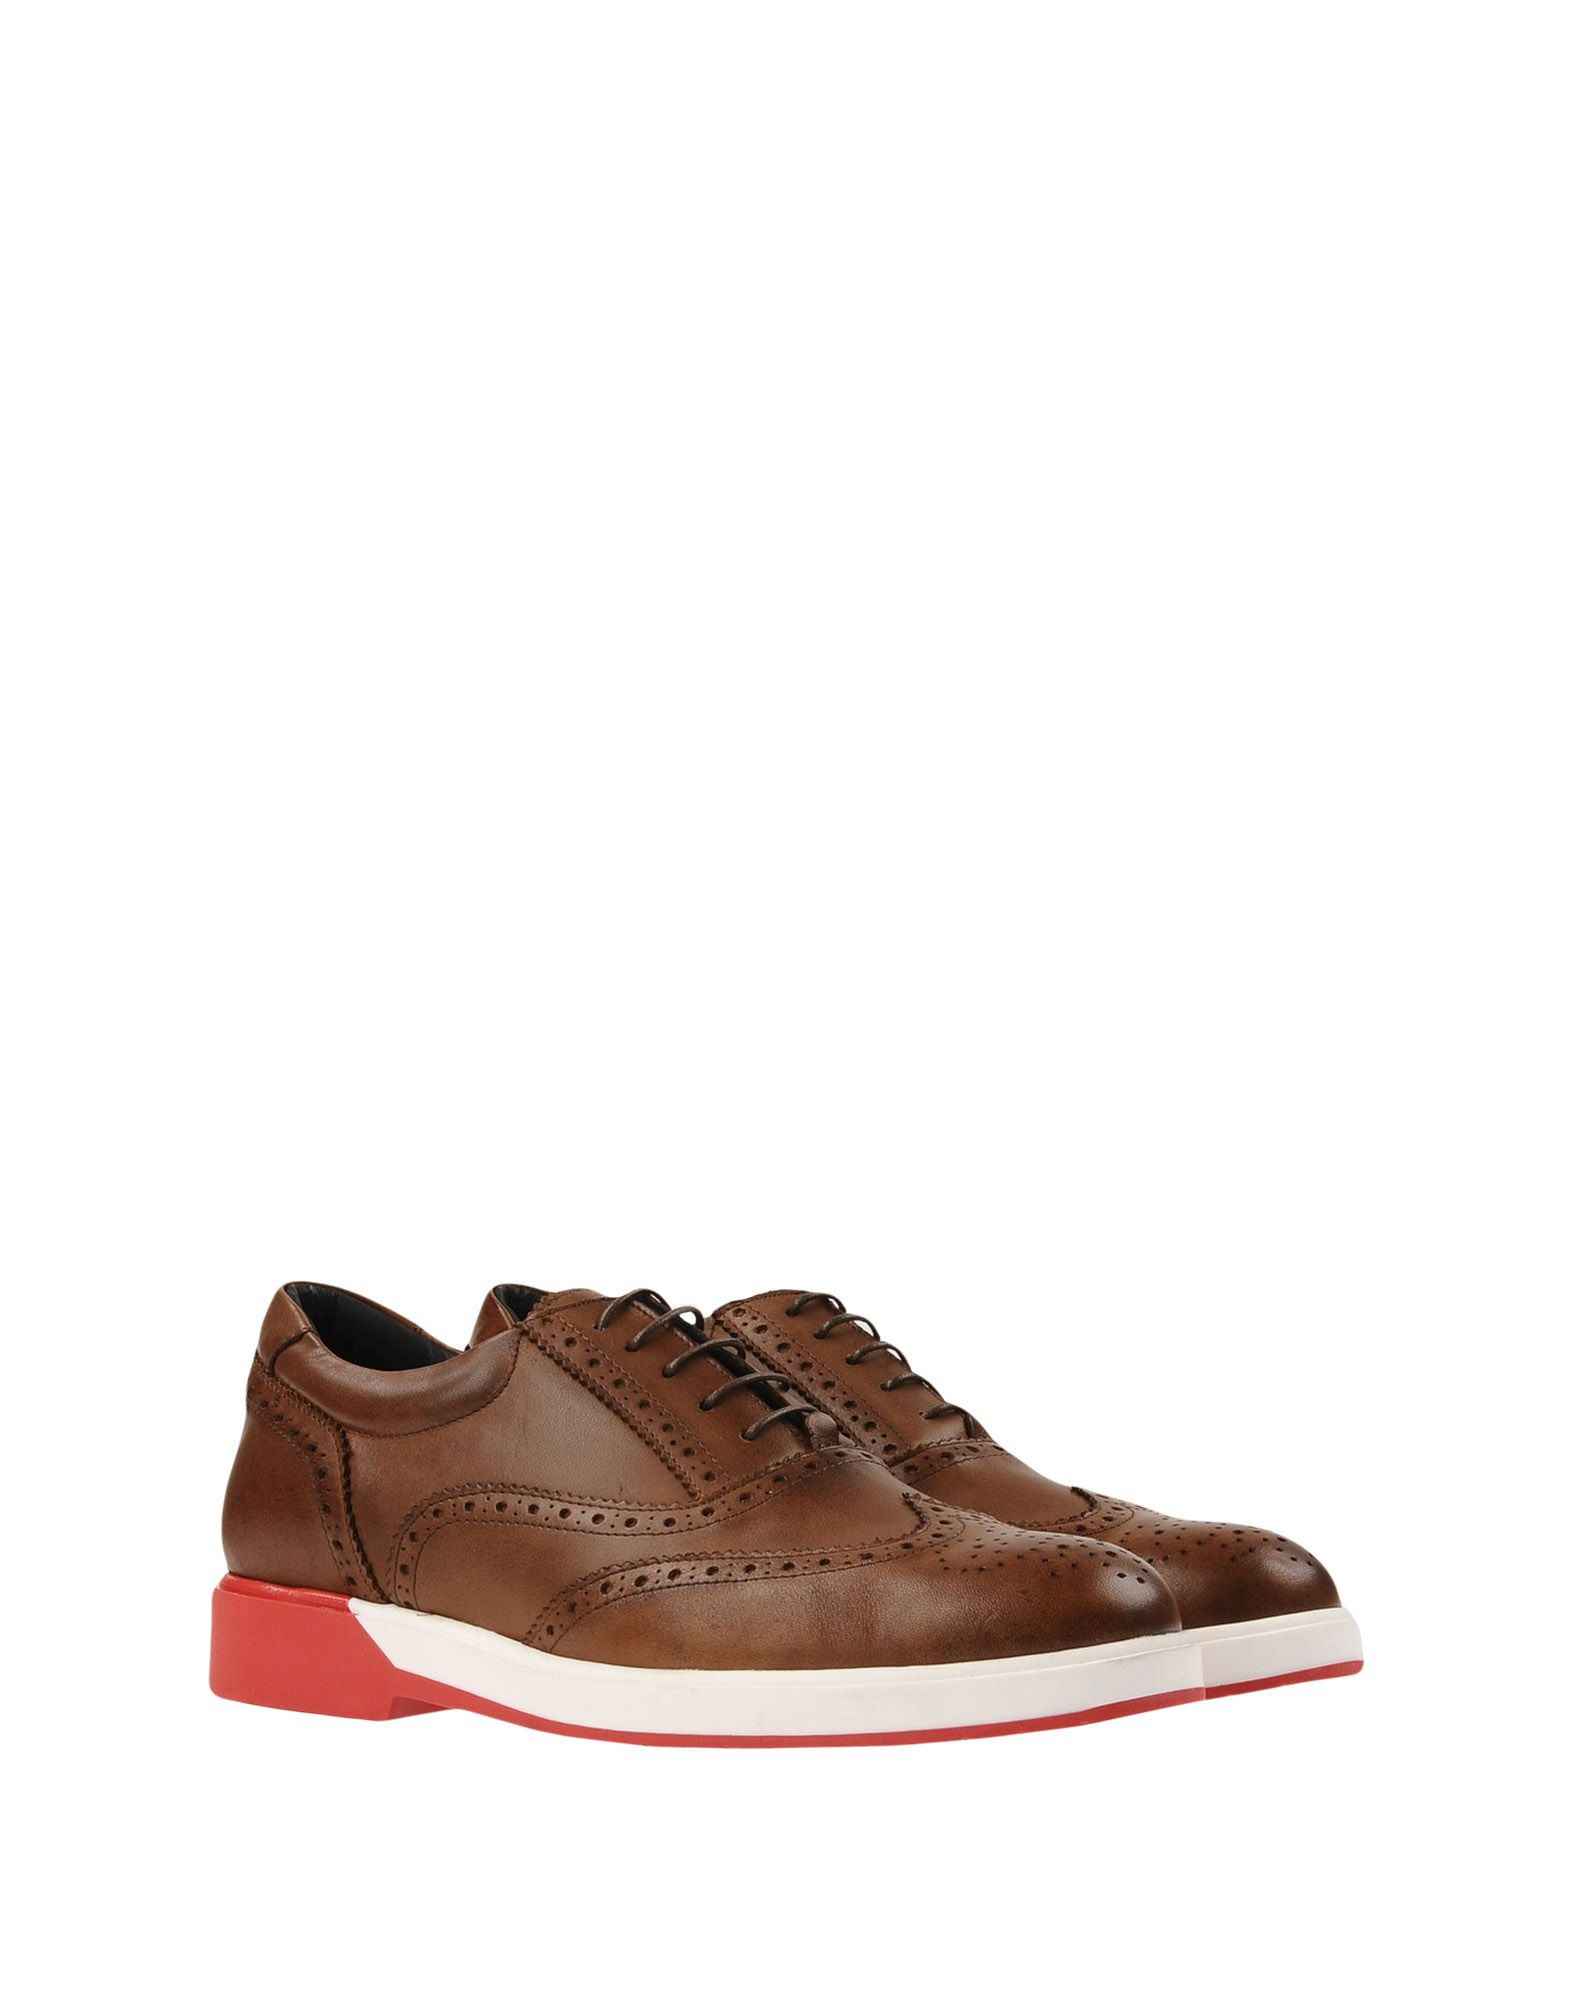 CHAUSSURES - Chaussures à lacetsHecon ttYbA1Oi